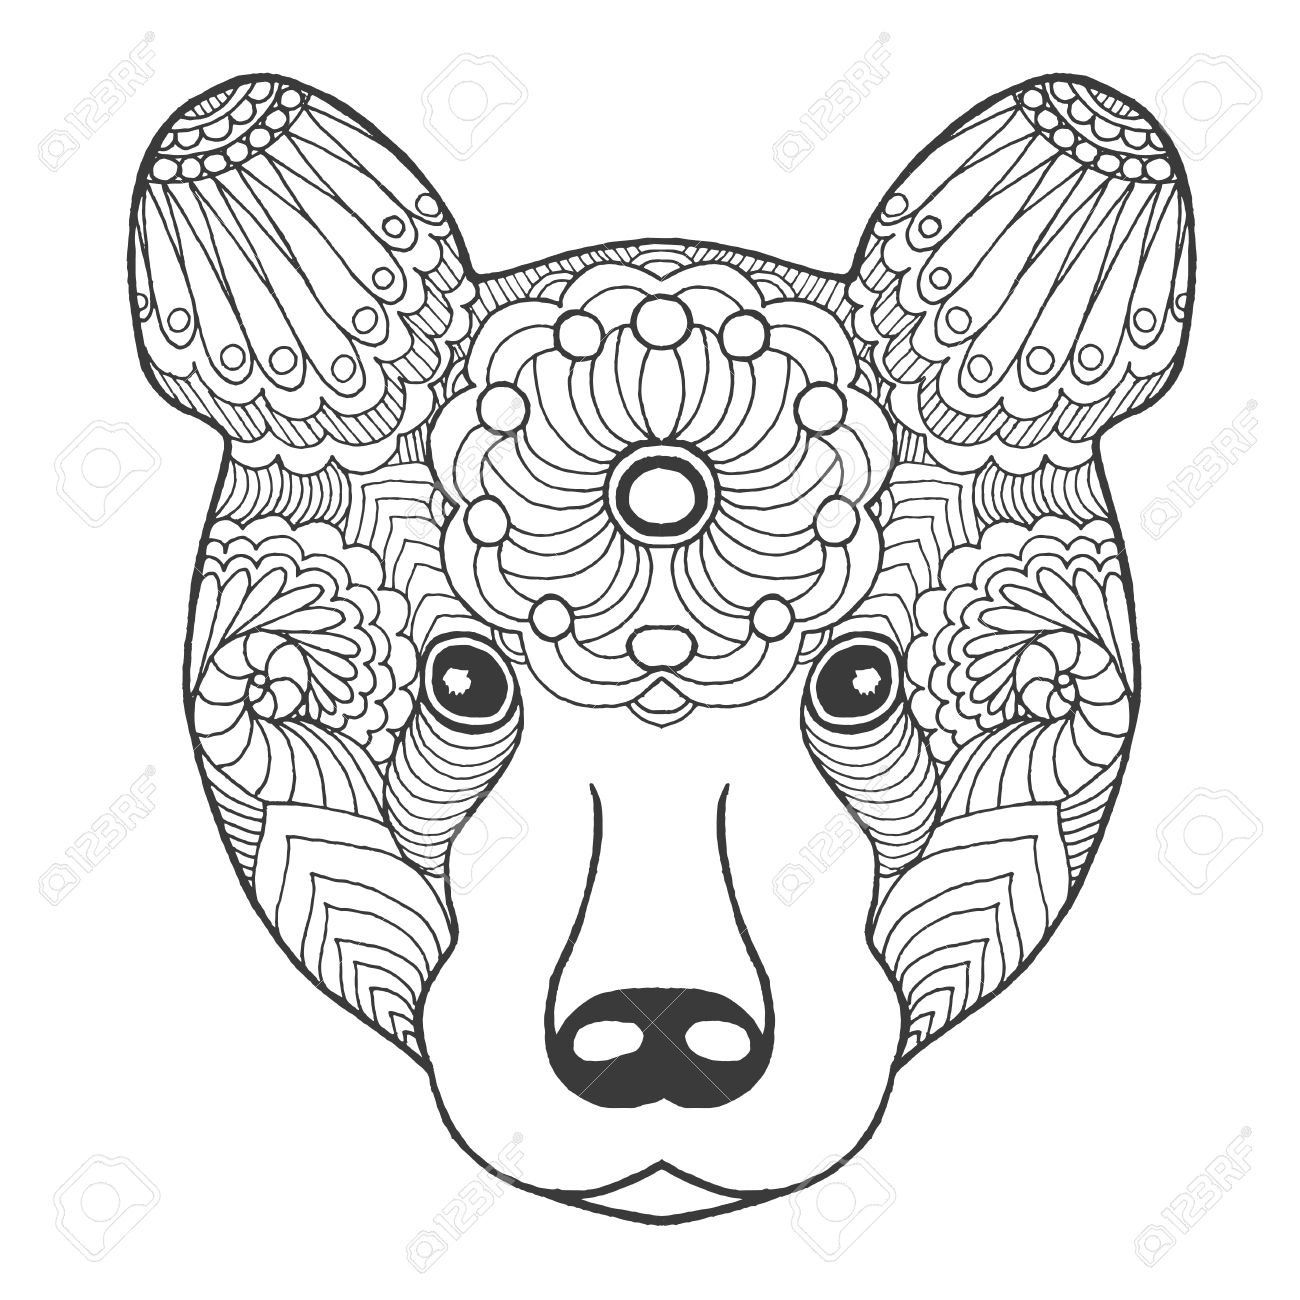 Tribal Bear Coloring Pages Native American Grizzly Bear Coloring ...